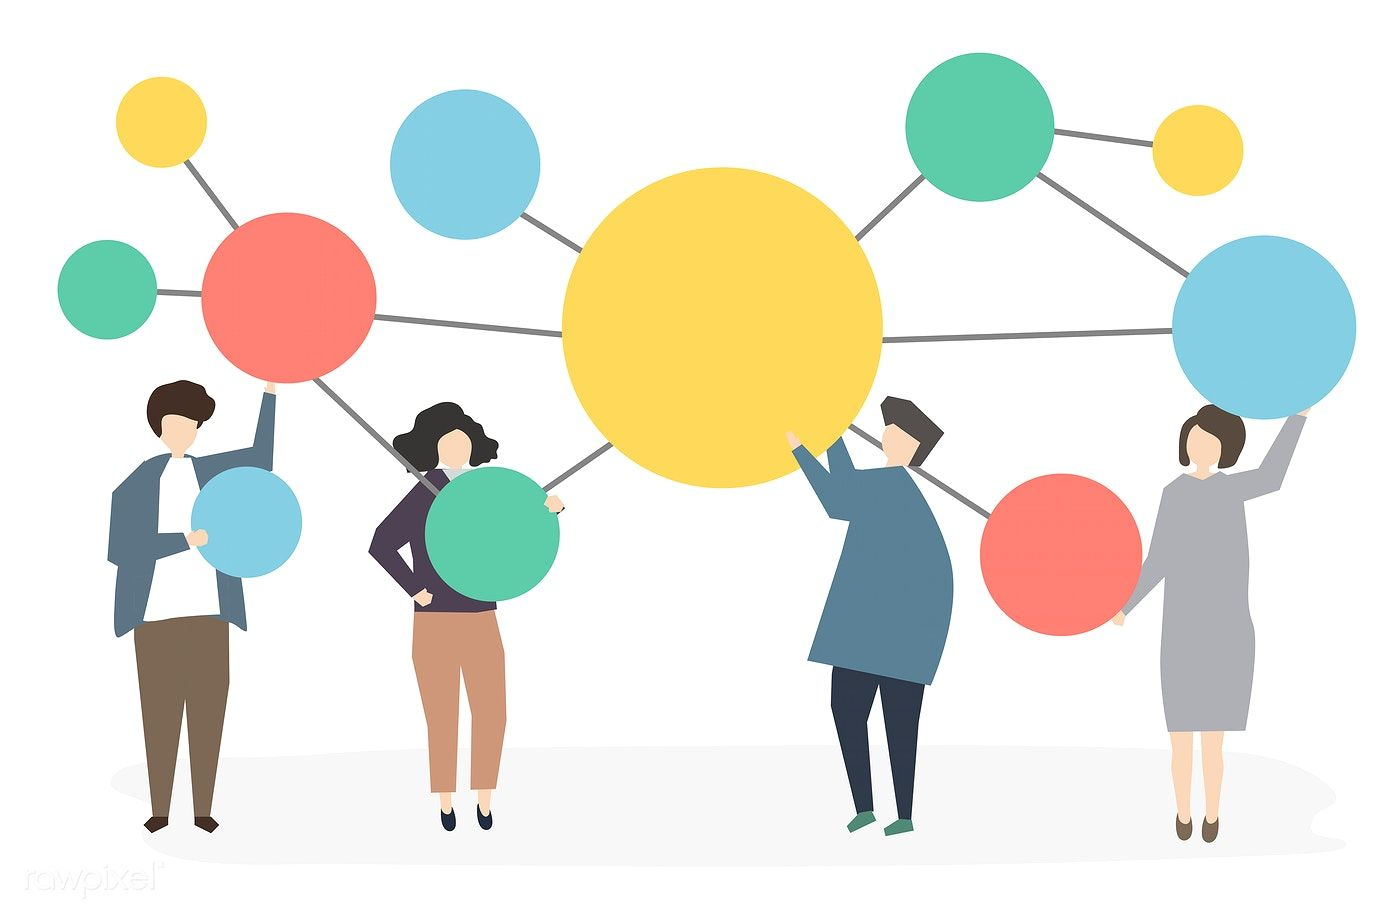 Download premium vector of People connected and networking